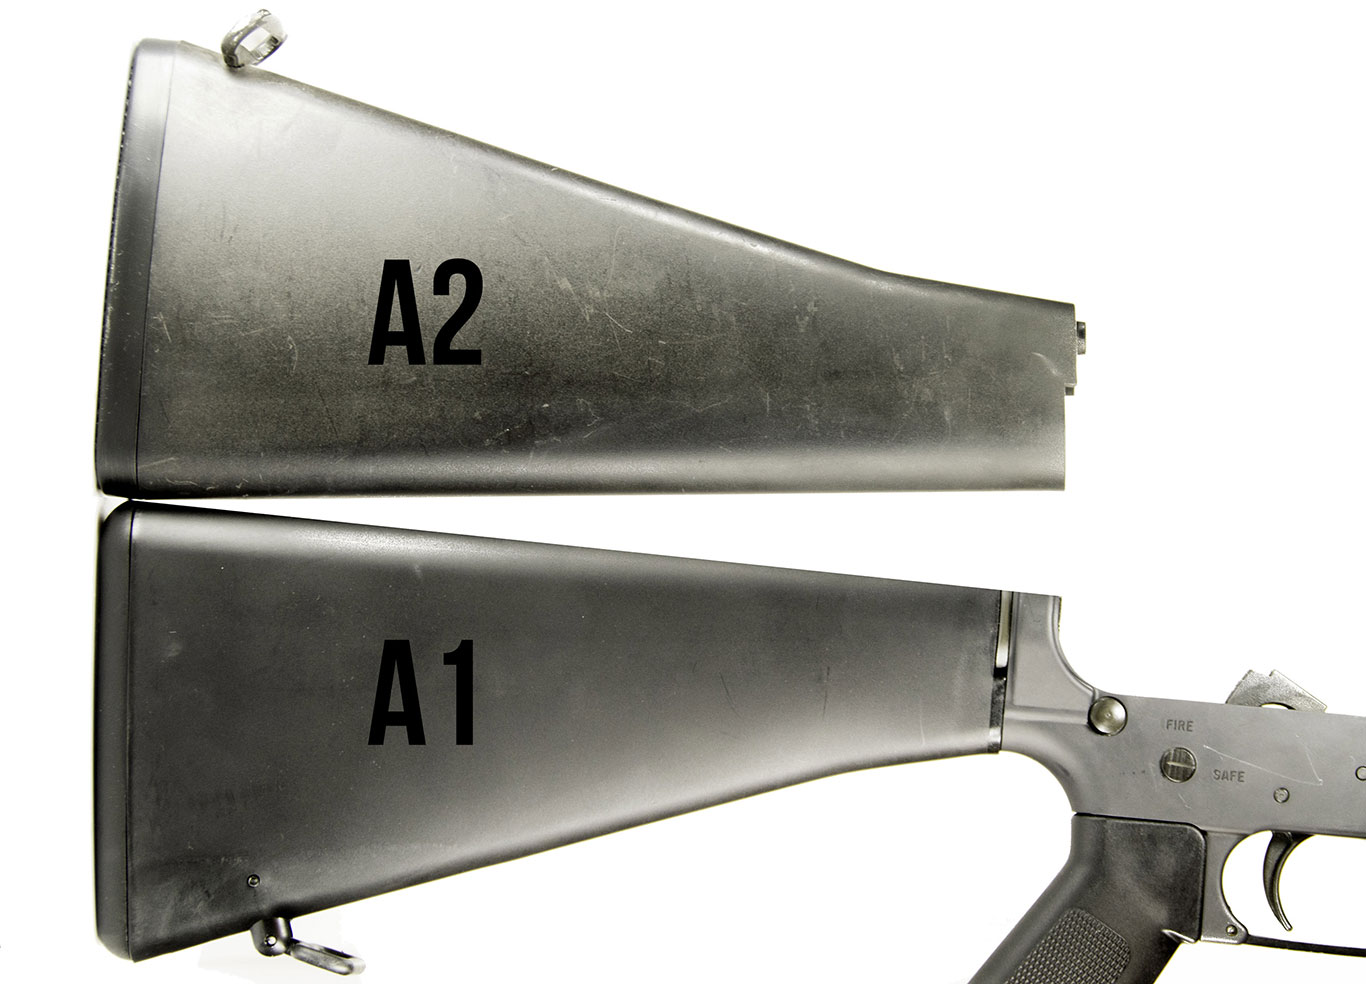 The A1-Length Retro Stock cuts the LOP by nearly two inches on a fixed-stock AR-15.